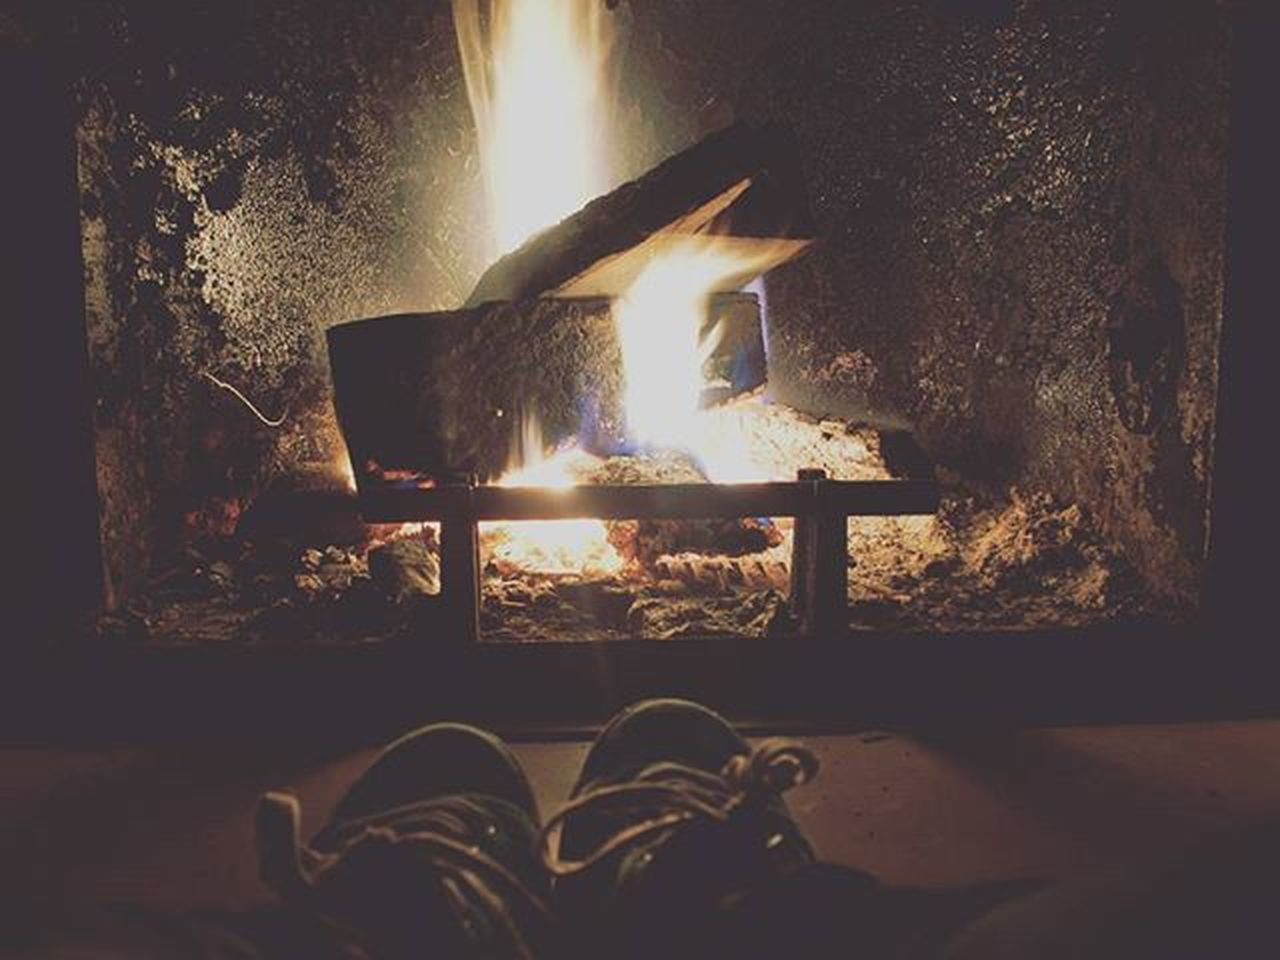 Home Homefire Fire Hot Family Casa Fuoco Caldo Famiglia Loneliness Solitudine Casamia Dark Darkness Oscurità Black Nero Winter Inverno Inverno15 Soymix Waitingforchristmas Waiting Christmas Xmas relax relaxed